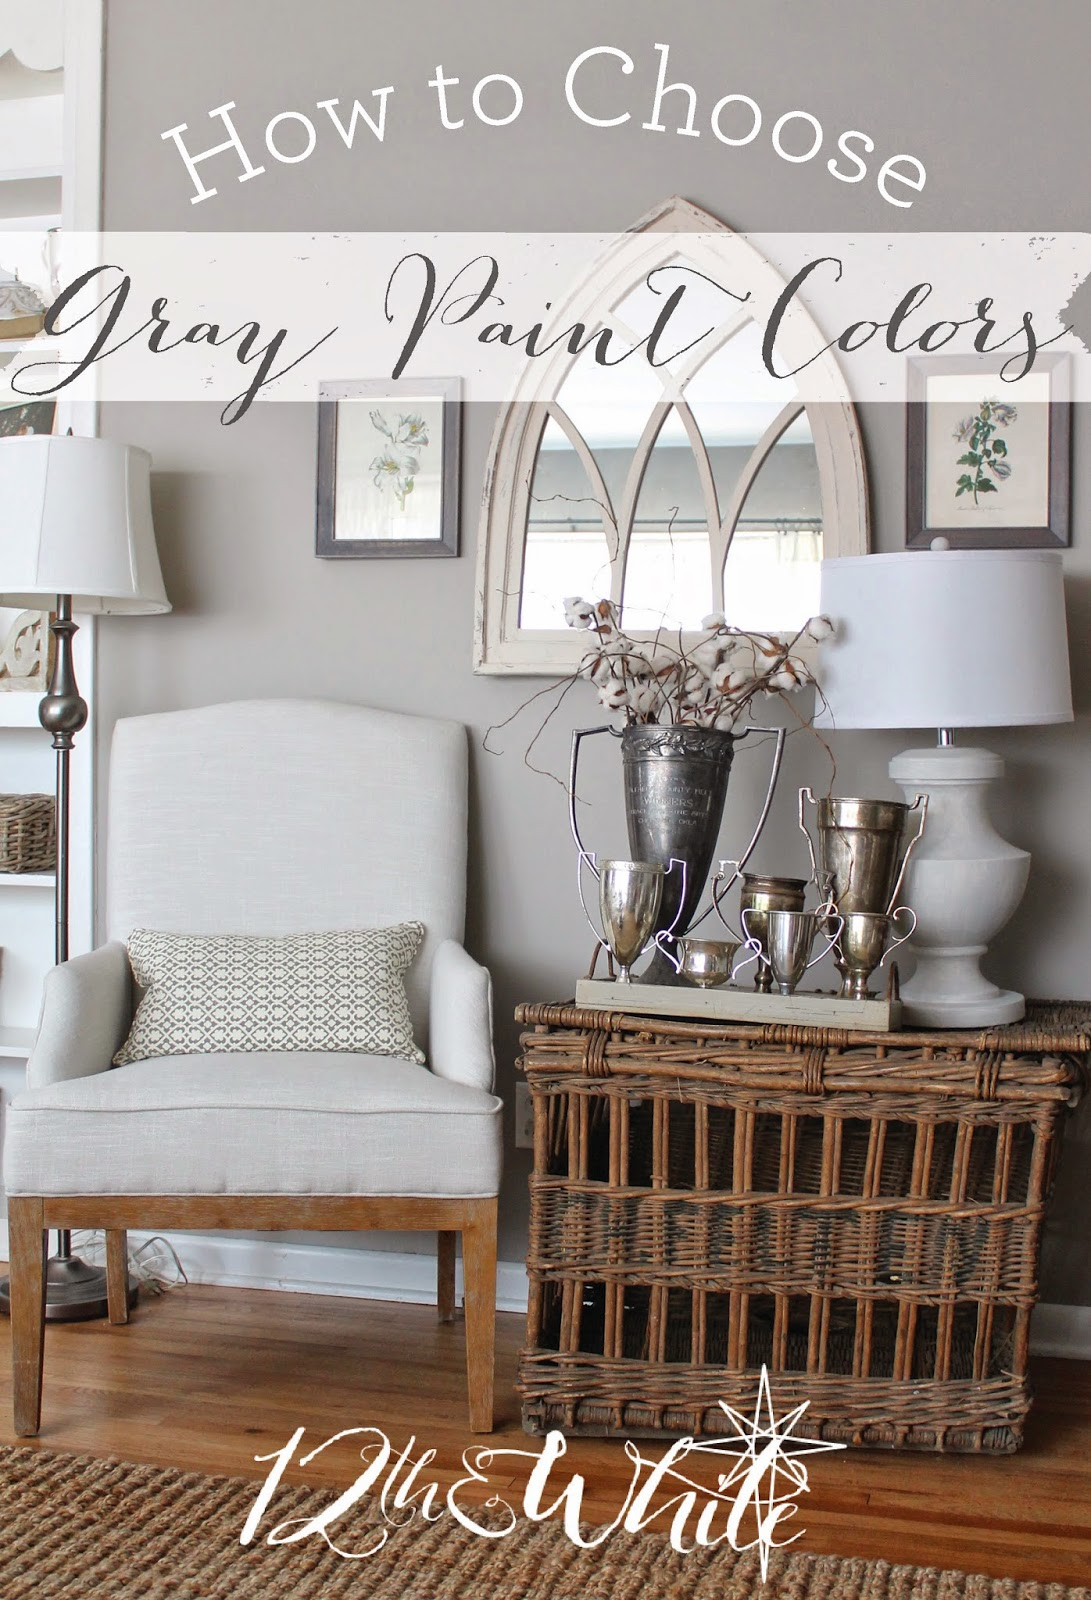 Gray paint colors interior interior paint color color for How to pick out paint colors for interior